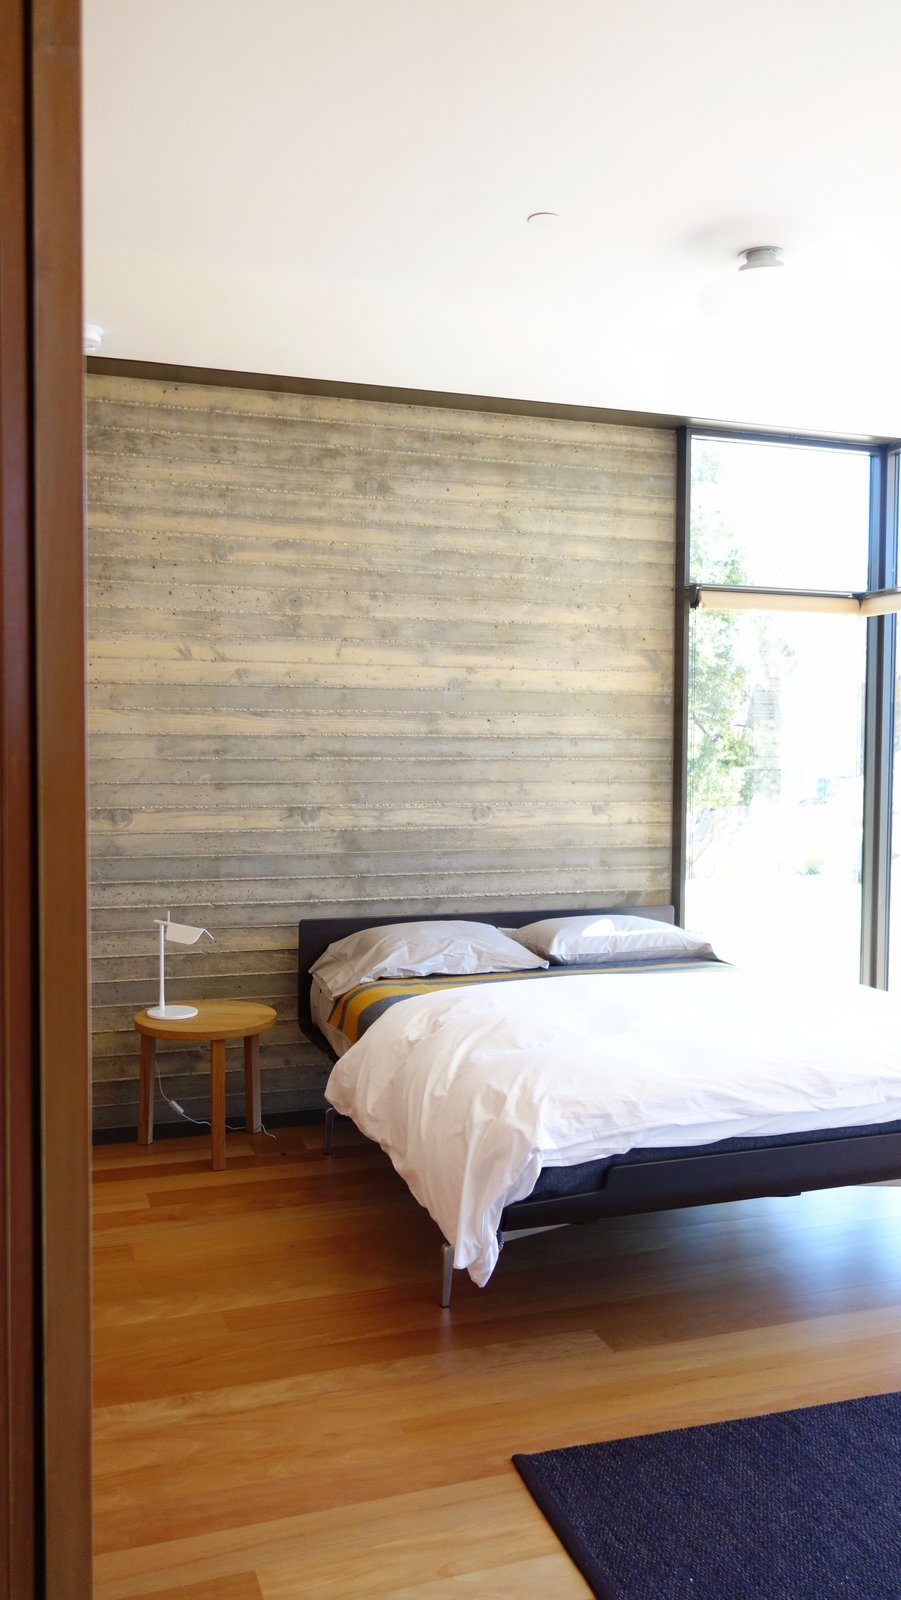 Bedroom, Bed, Night Stands, and Medium Hardwood Floor  Photo 8 of 13 in Take Your Next Vacation in a Midcentury Home in the Santa Monica Mountains